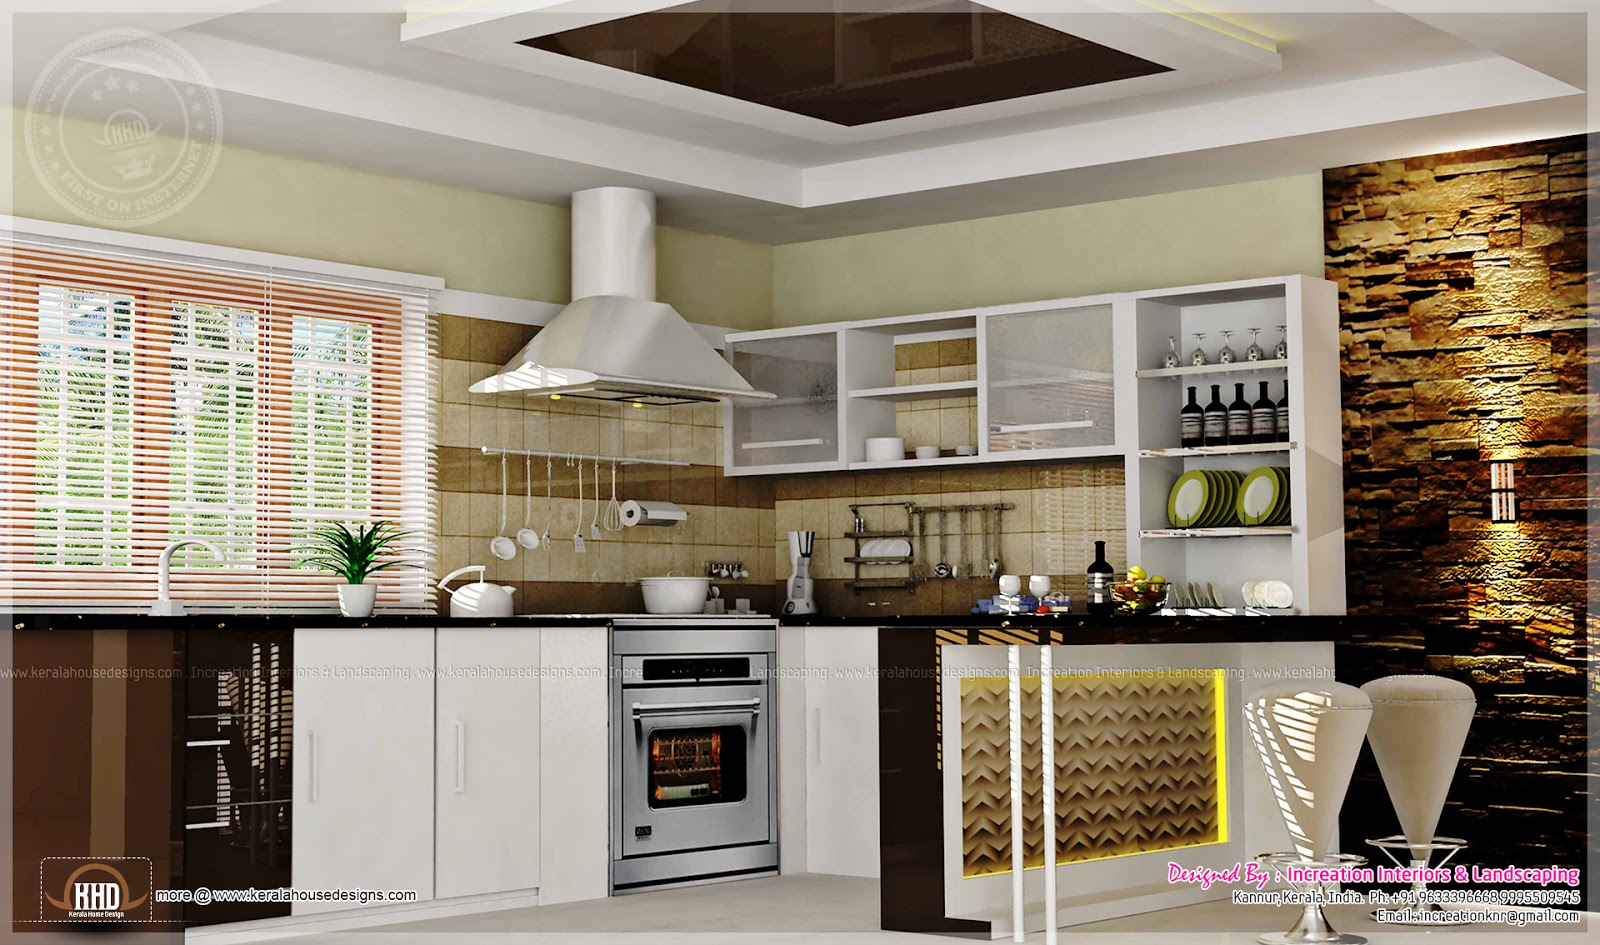 Home interior designs by increation home kerala plans Home interior design ideas for kitchen